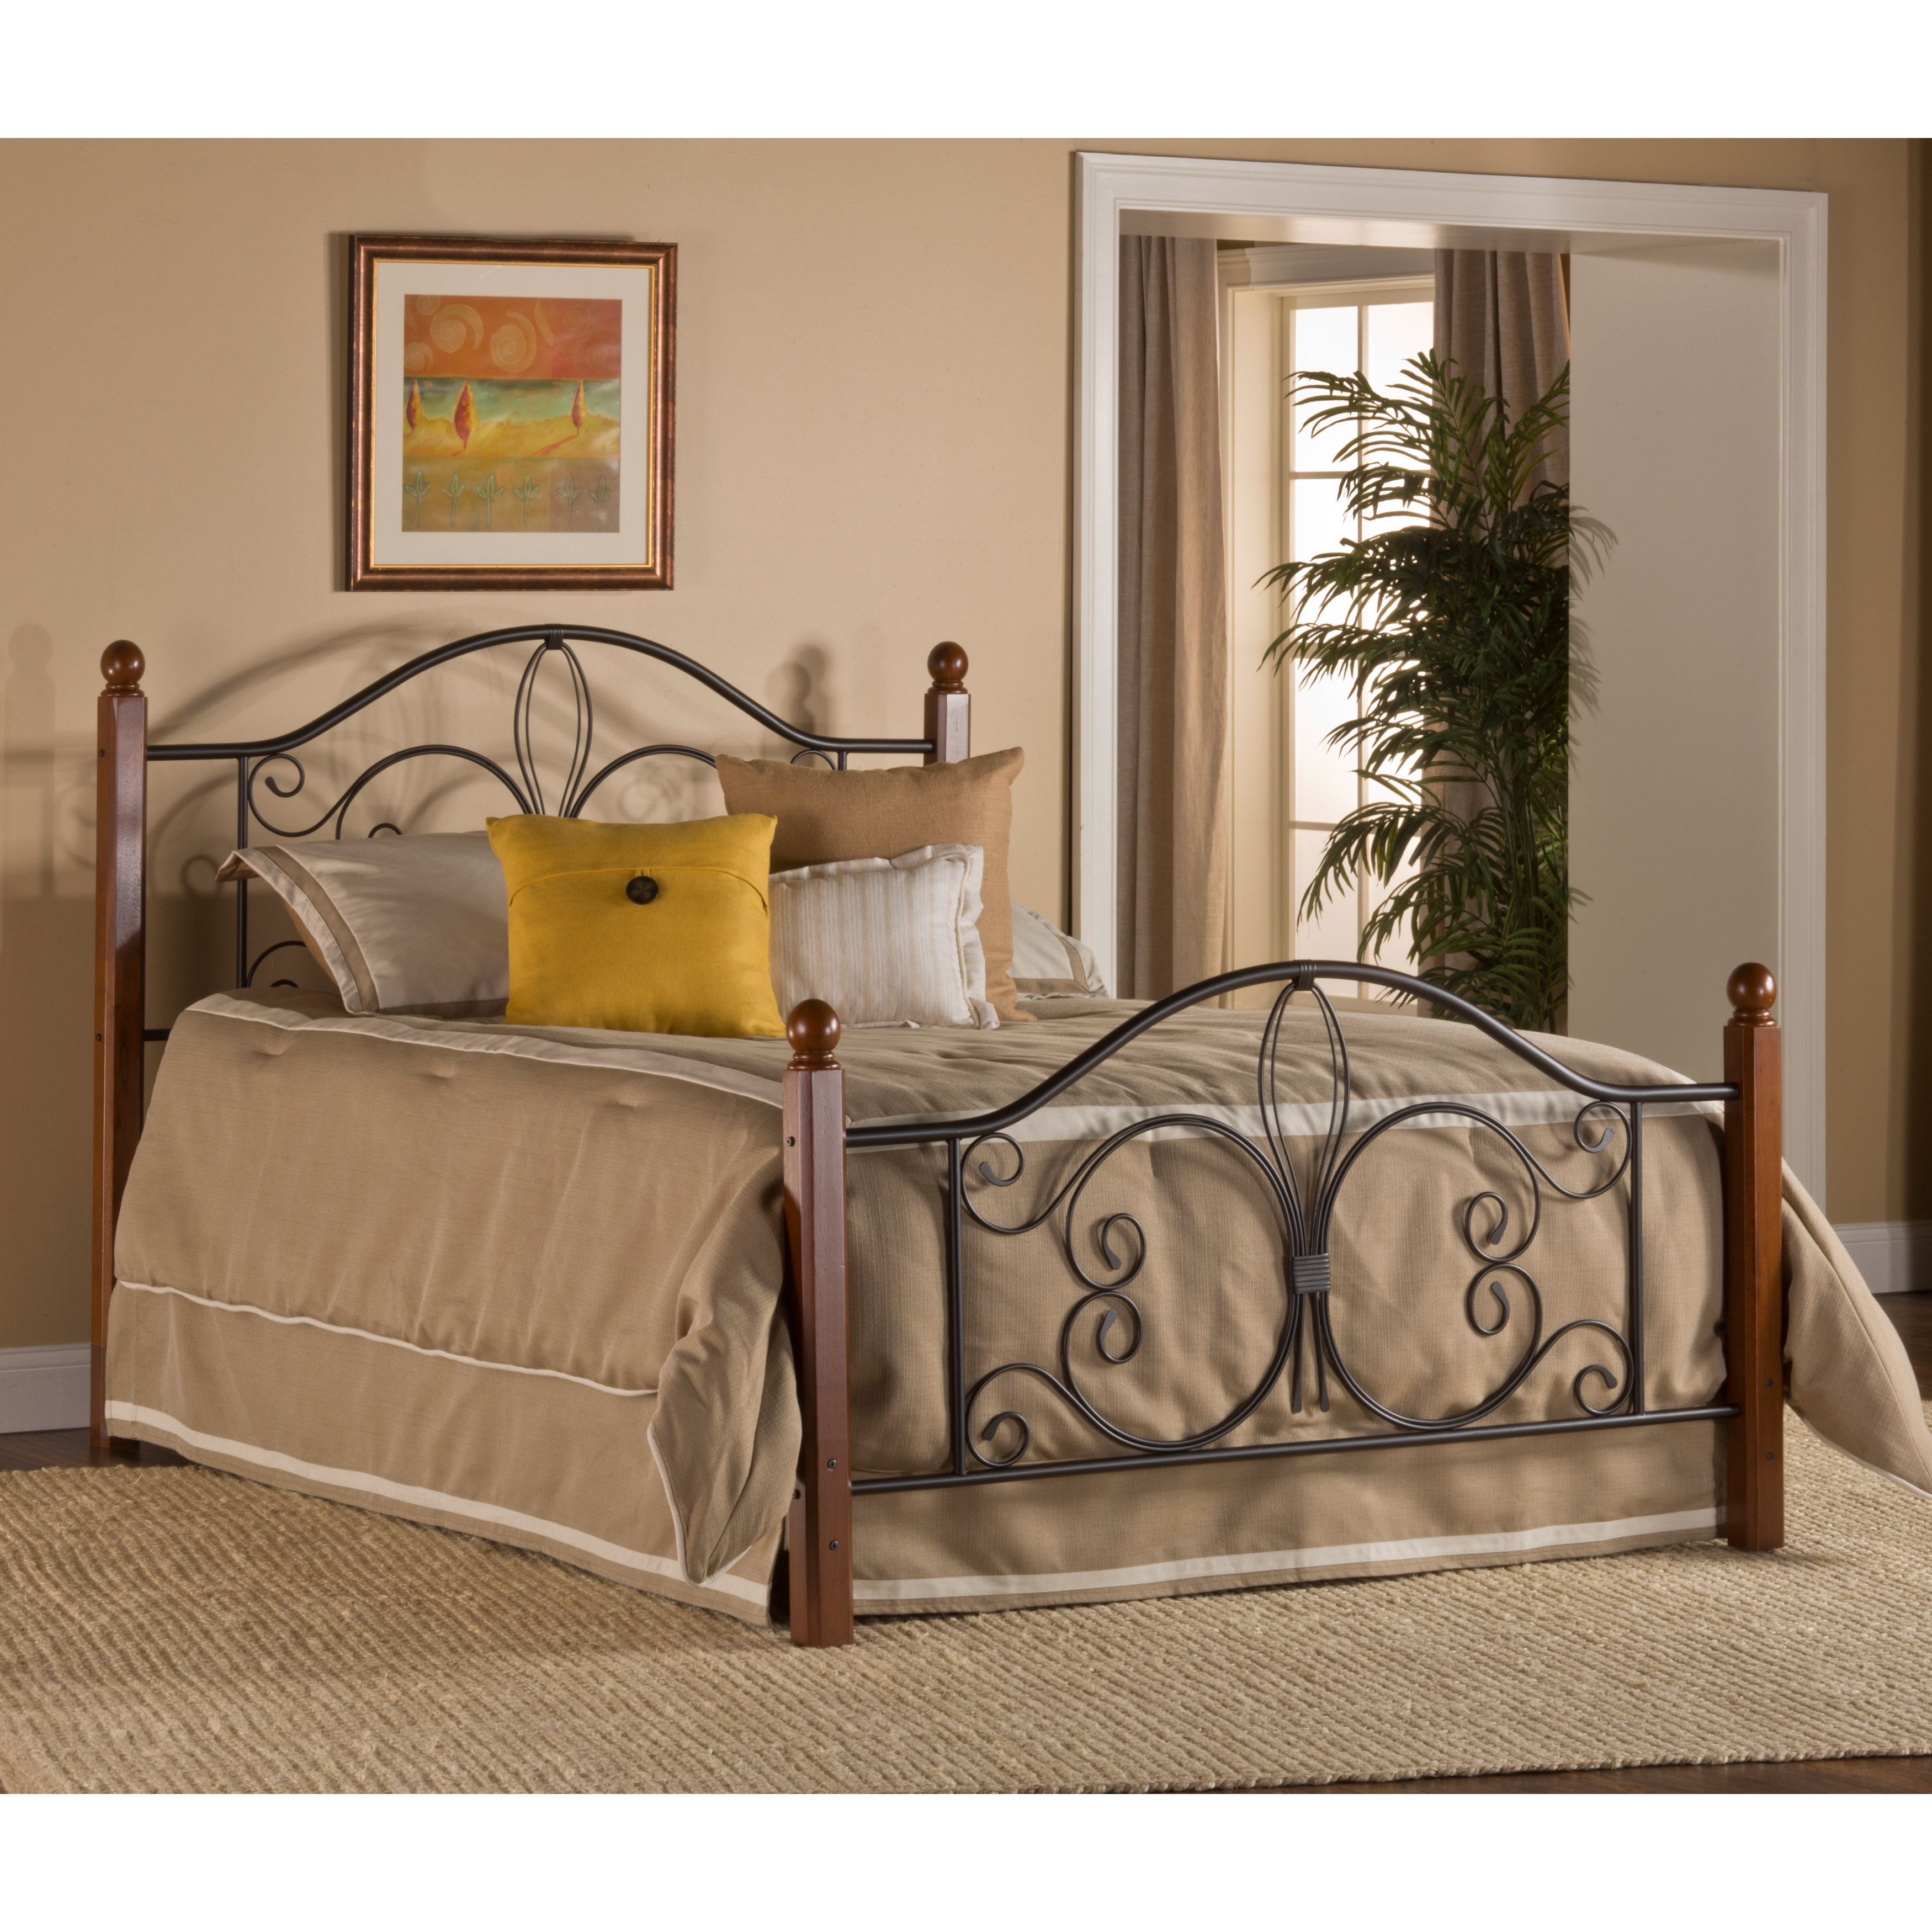 Hillsdale Milwaukee Wood Post Bed with Rails (Queen), Black